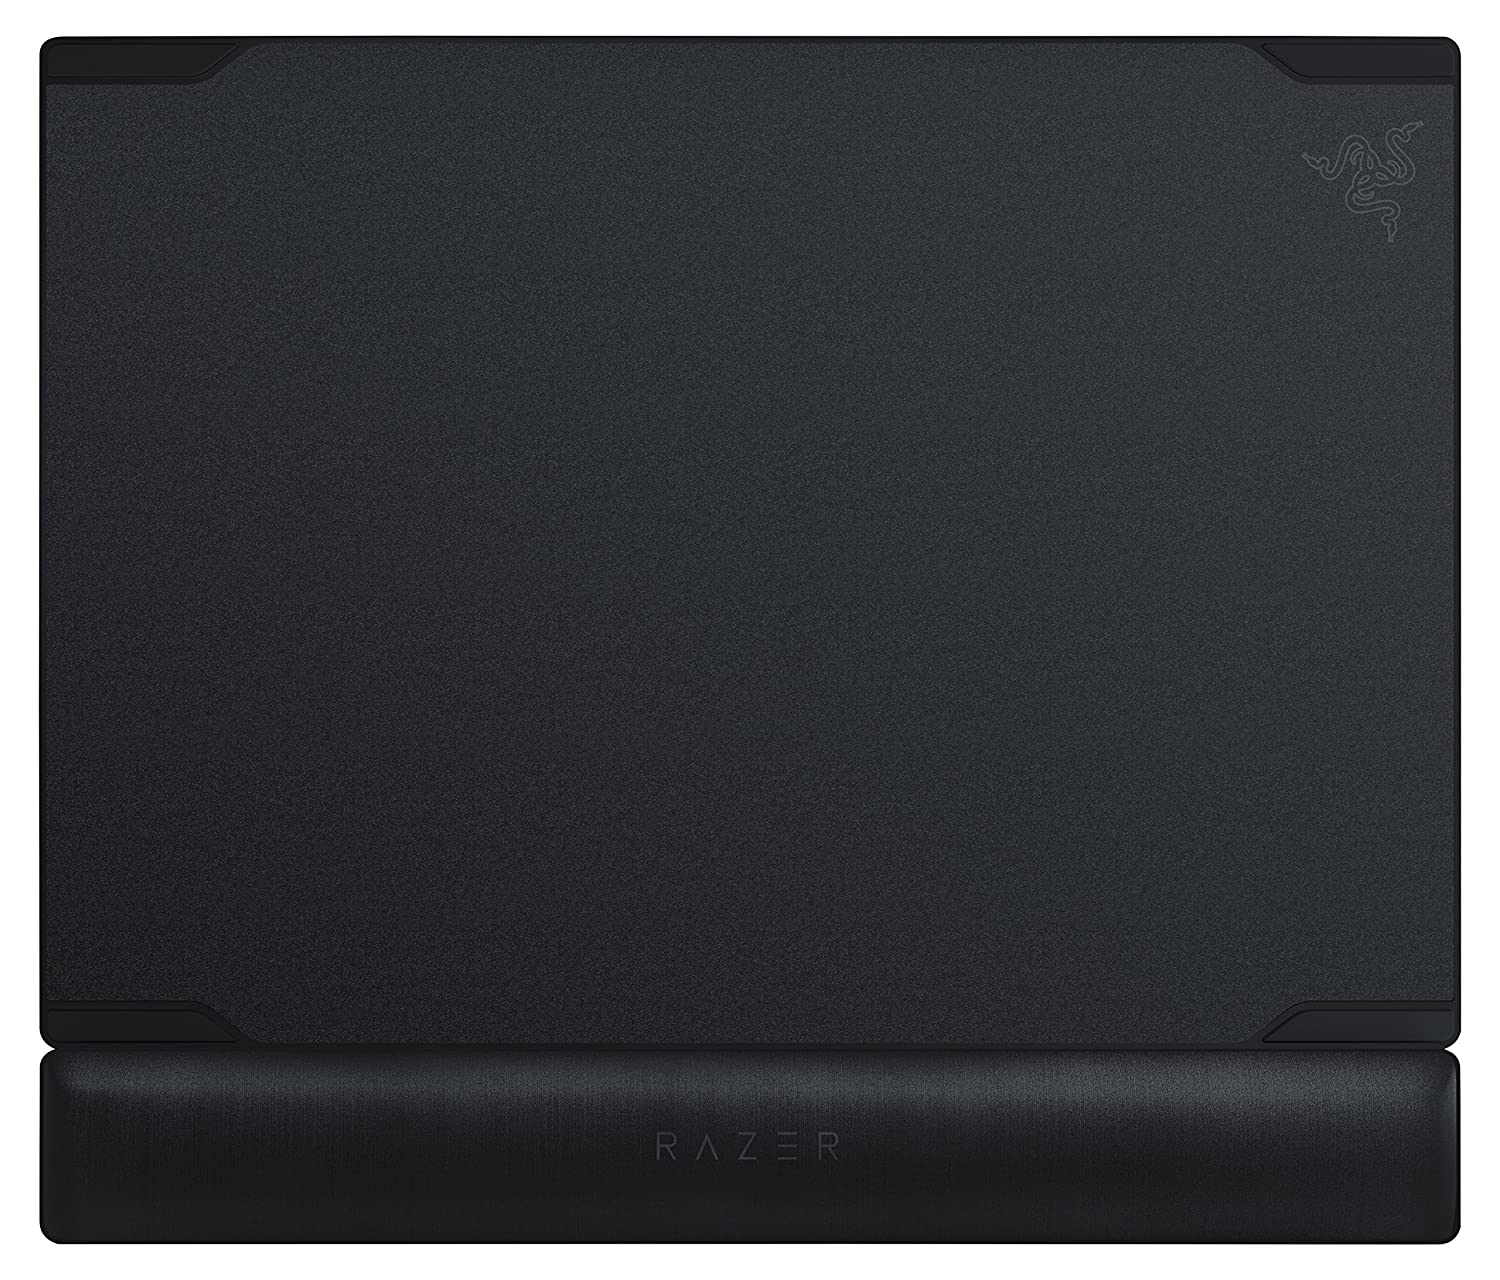 RAZER VESPULA V2: Dual-Sided Surface - Optimized Form Factor - Improved Memory Foam Wrist Rest - Hard and Cloth Gaming Mouse Mat Razer Inc. RZ02-02180100-R3U1